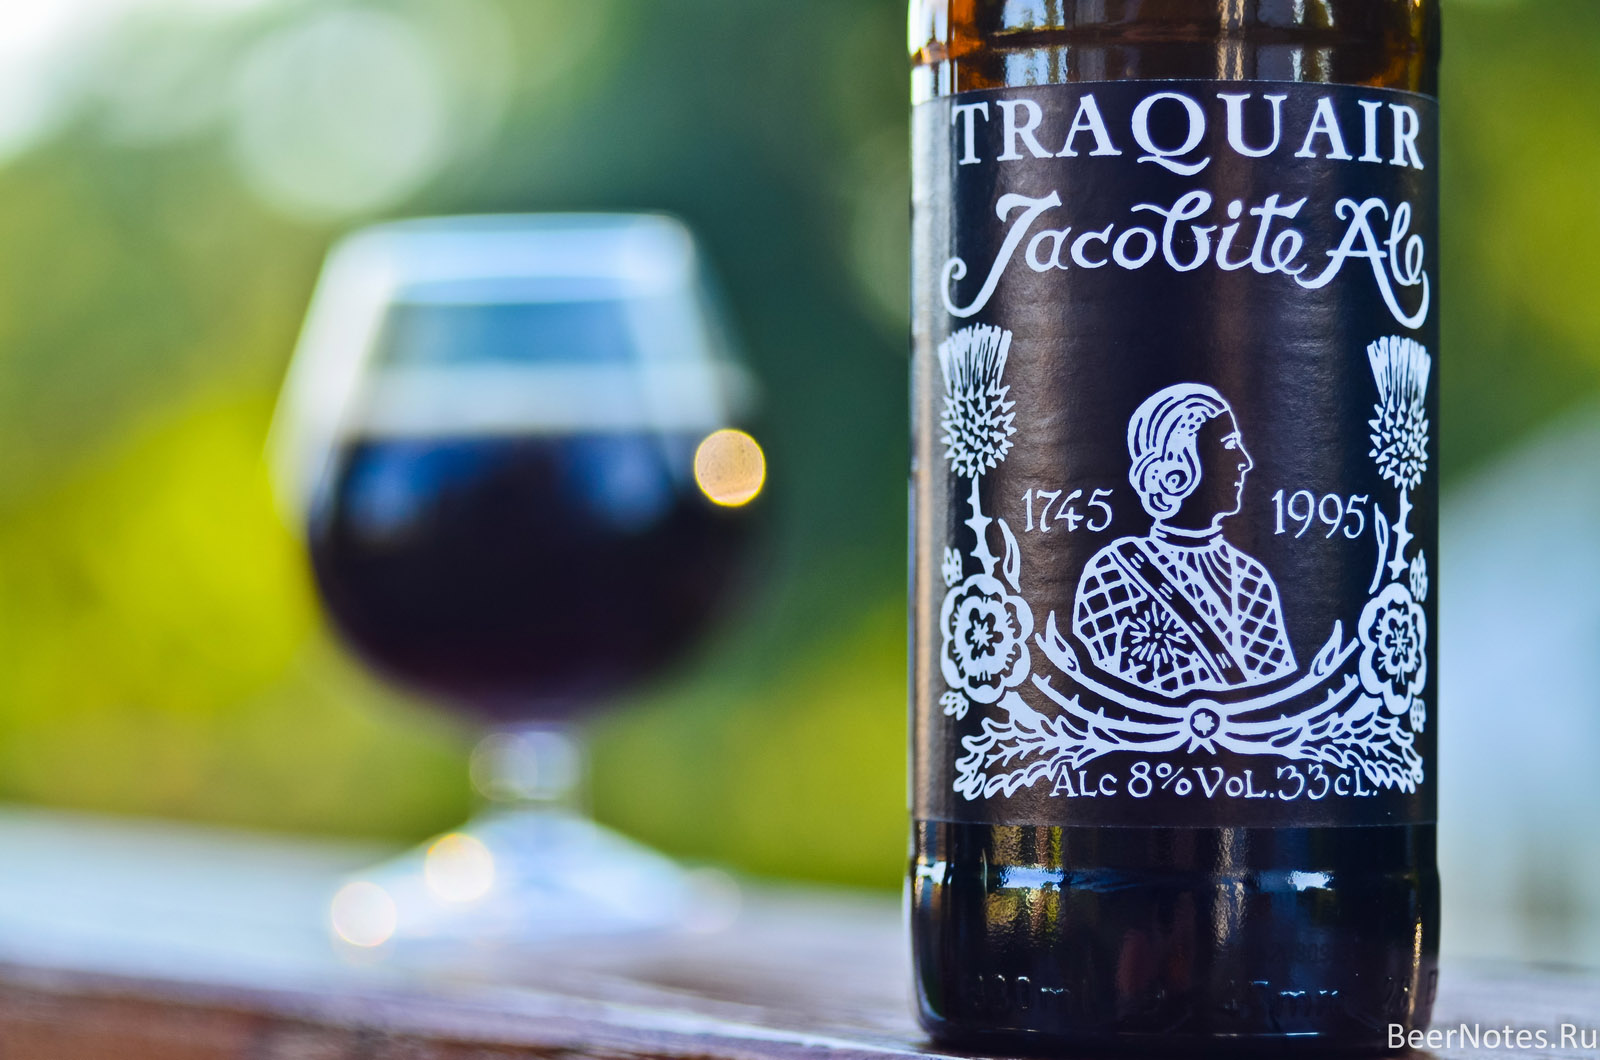 Traquair Jacobite Ale5